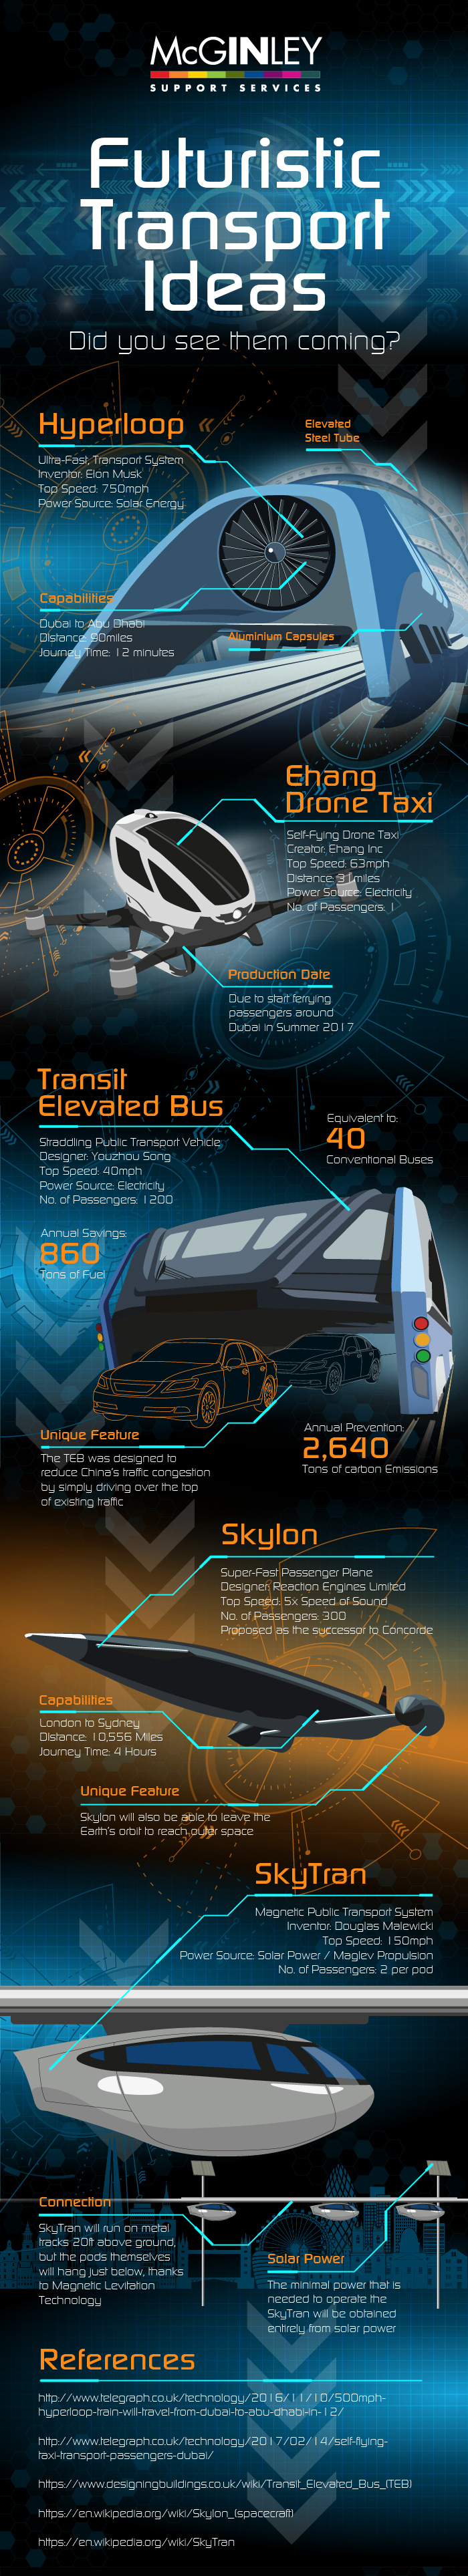 Futuristic-Transport-Ideas